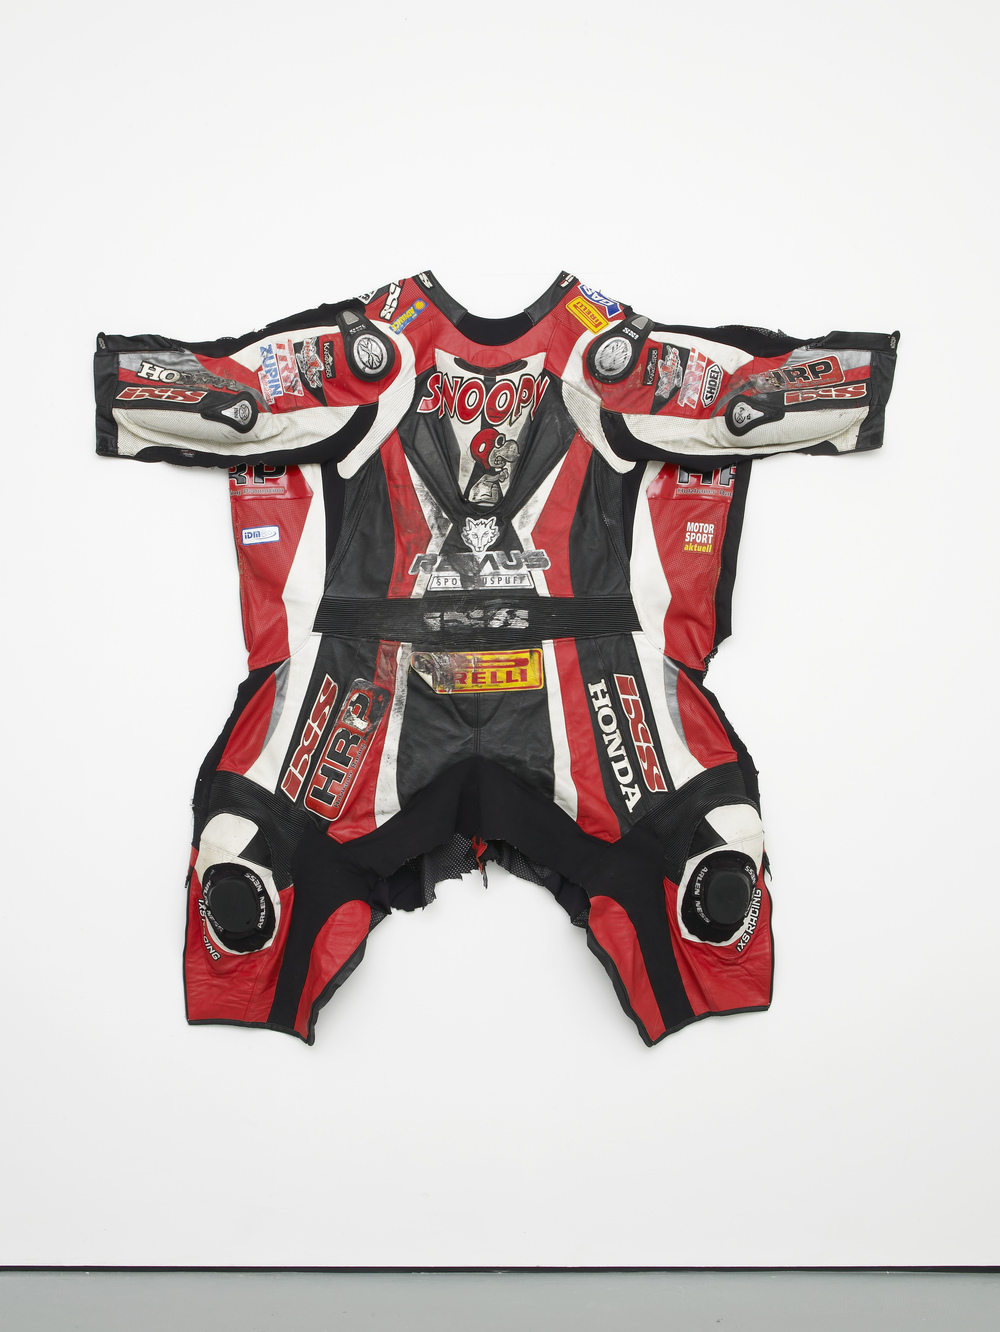 Snoopy 2014 Motorbike suit, nails 153 x 161 x 14 cm / 60.2 x 63.3 x 5.5 in